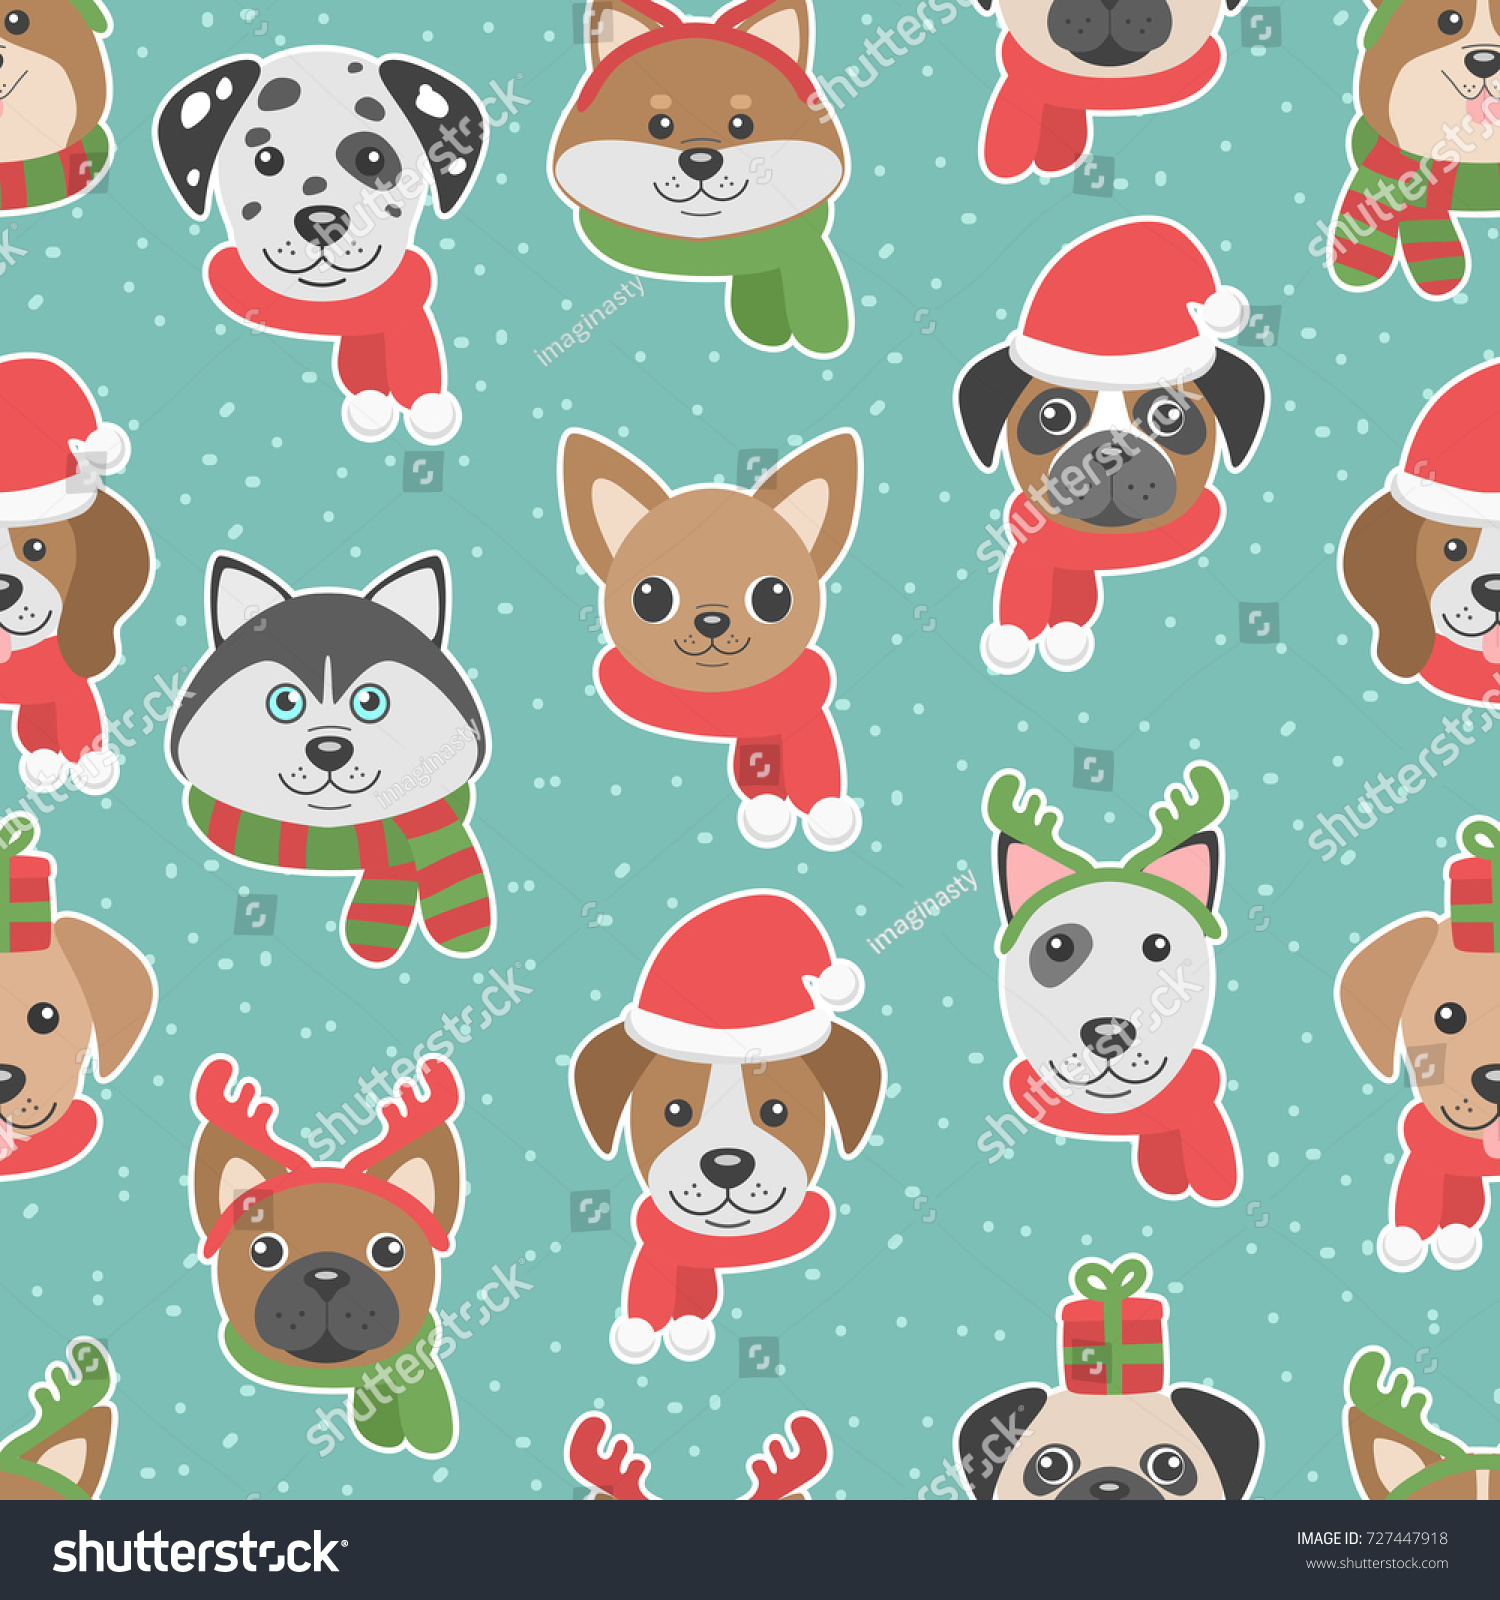 Cute Christmas Seamless Pattern With Cartoon Dogs Funny Characters Vector Background Wallpaper